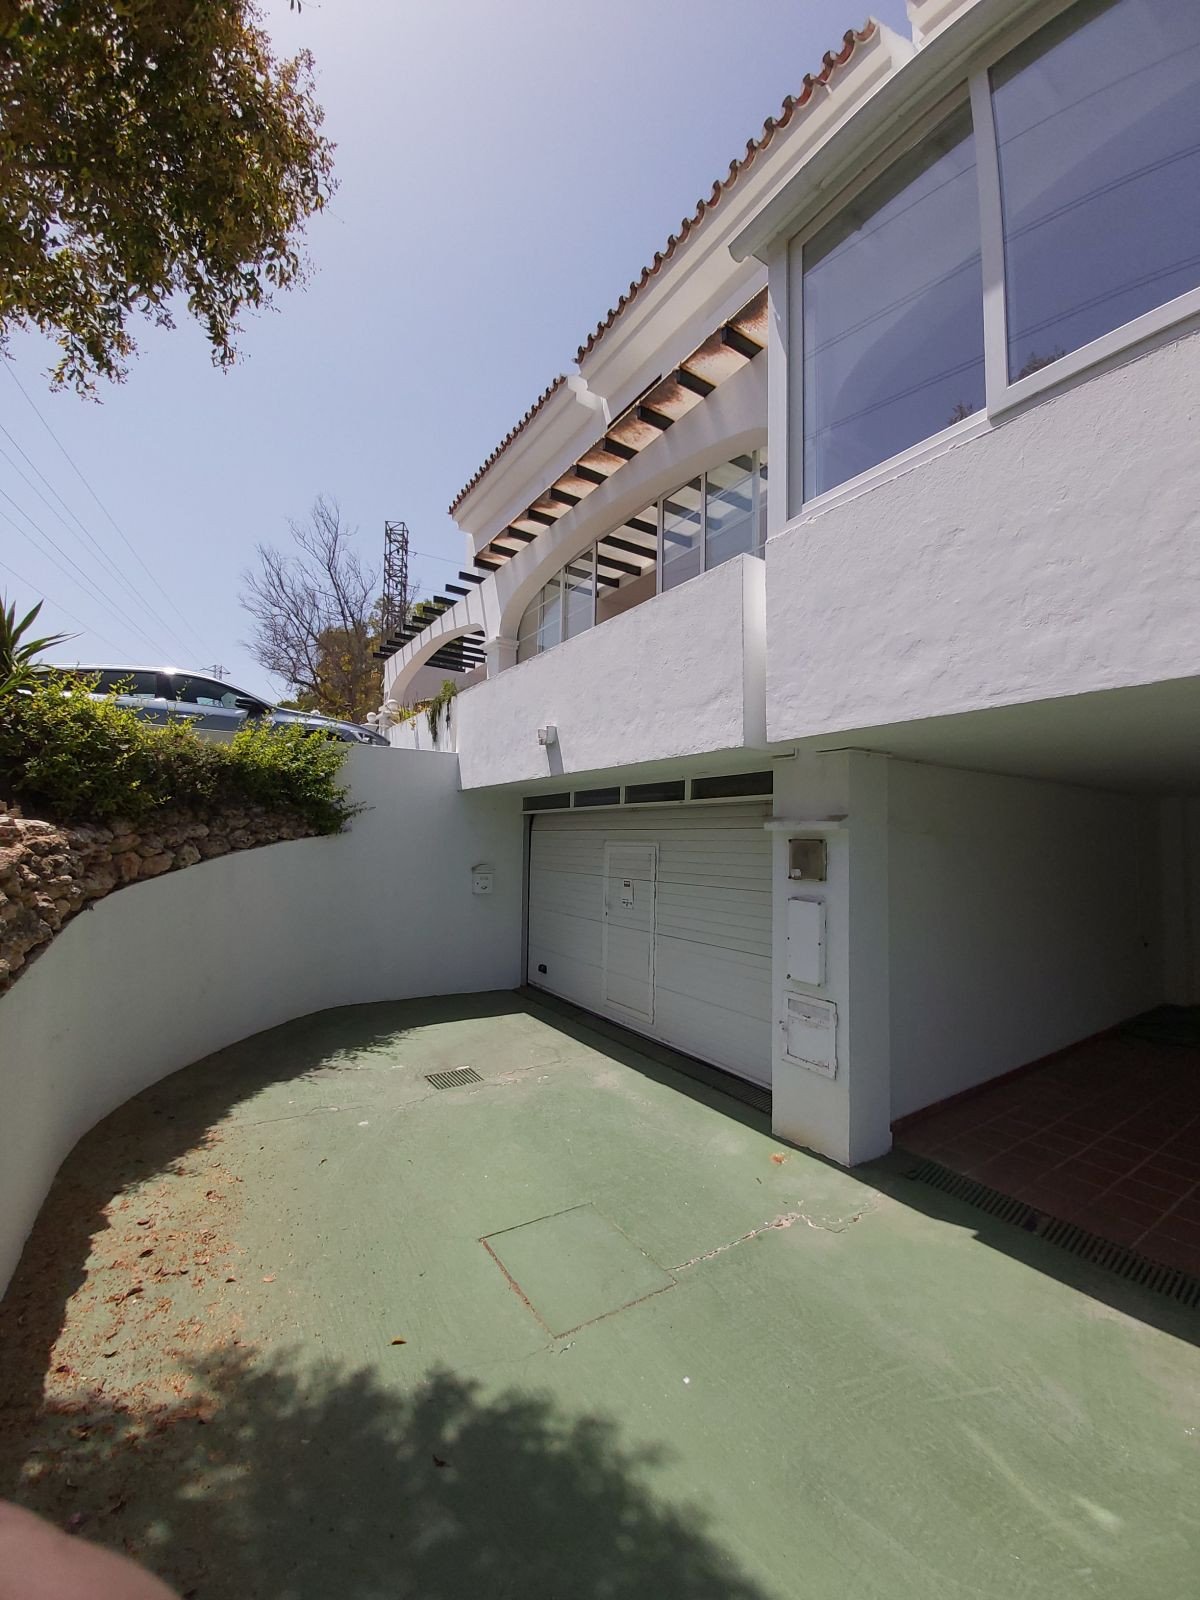 Townhouse with 4 bedrooms and 2 bathrooms, total 210 m², ideal for families, surrounded by schools (, Spain